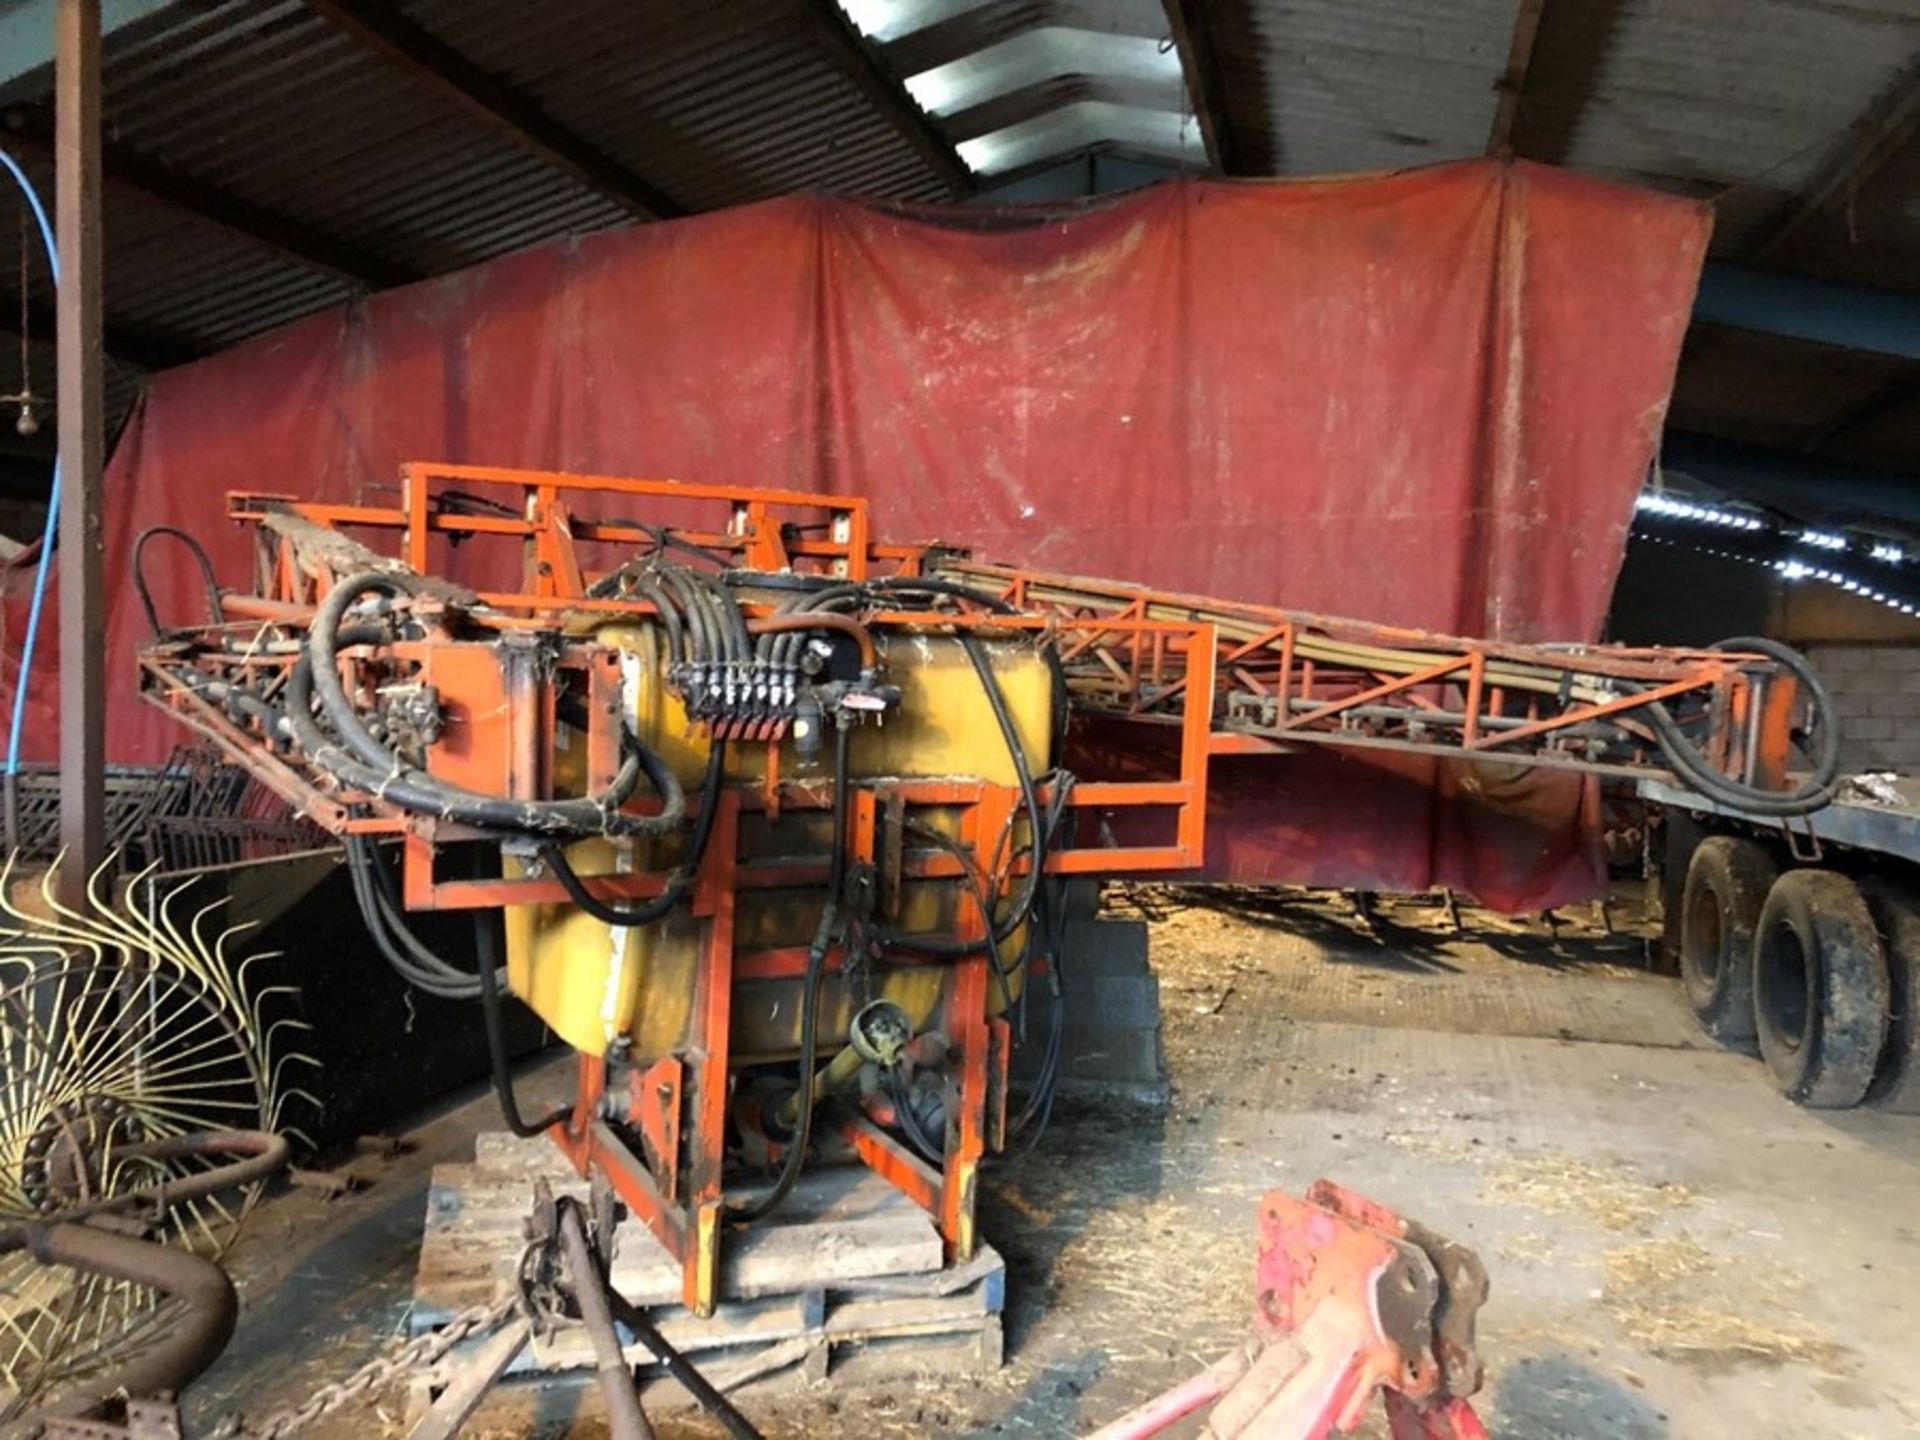 Allman Unibuilt 20m mounted sprayer, 1000lt tank with Allman front tank, not NSTS tested, manual